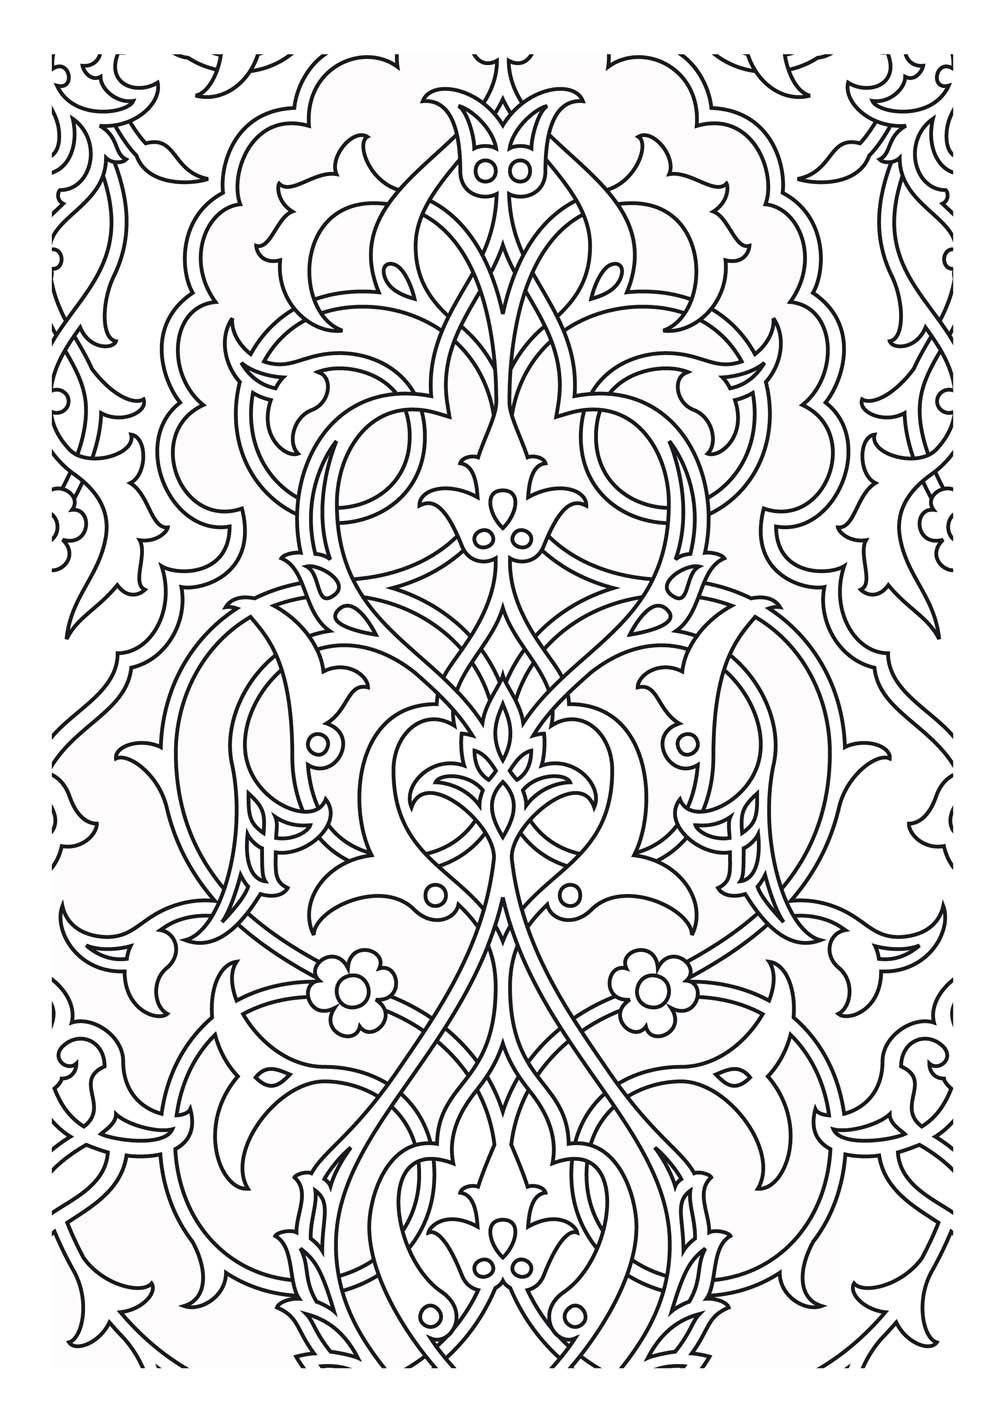 print - Coloring Patterns Pages